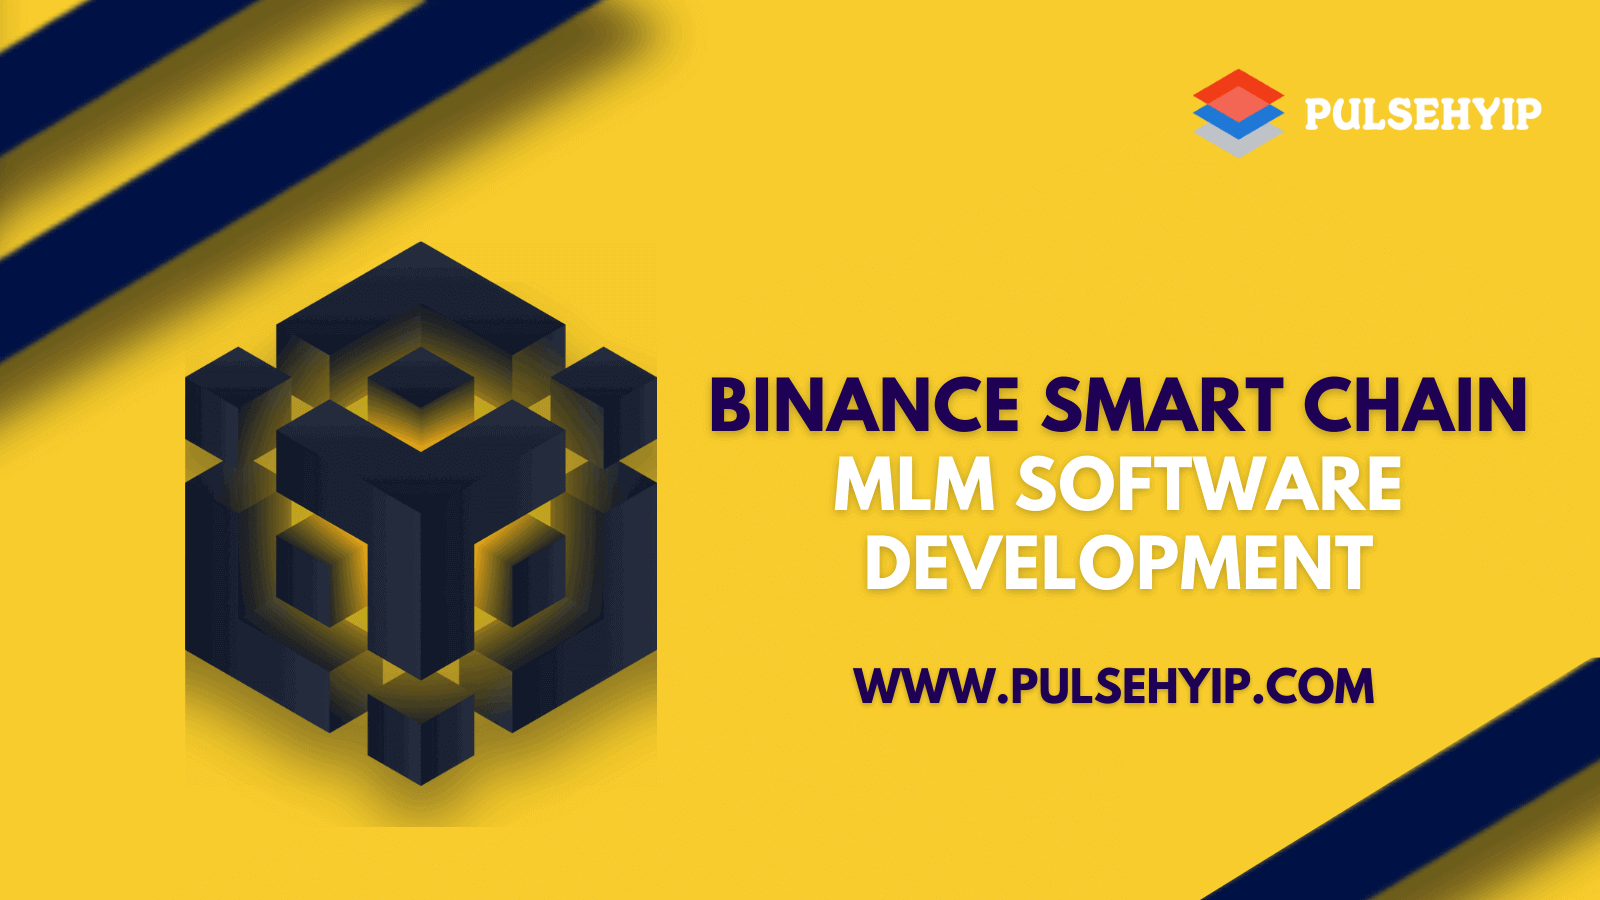 How to Build Smart Contract Based MLM Software on Binance Smart Chain? Here is the Pocket Guide